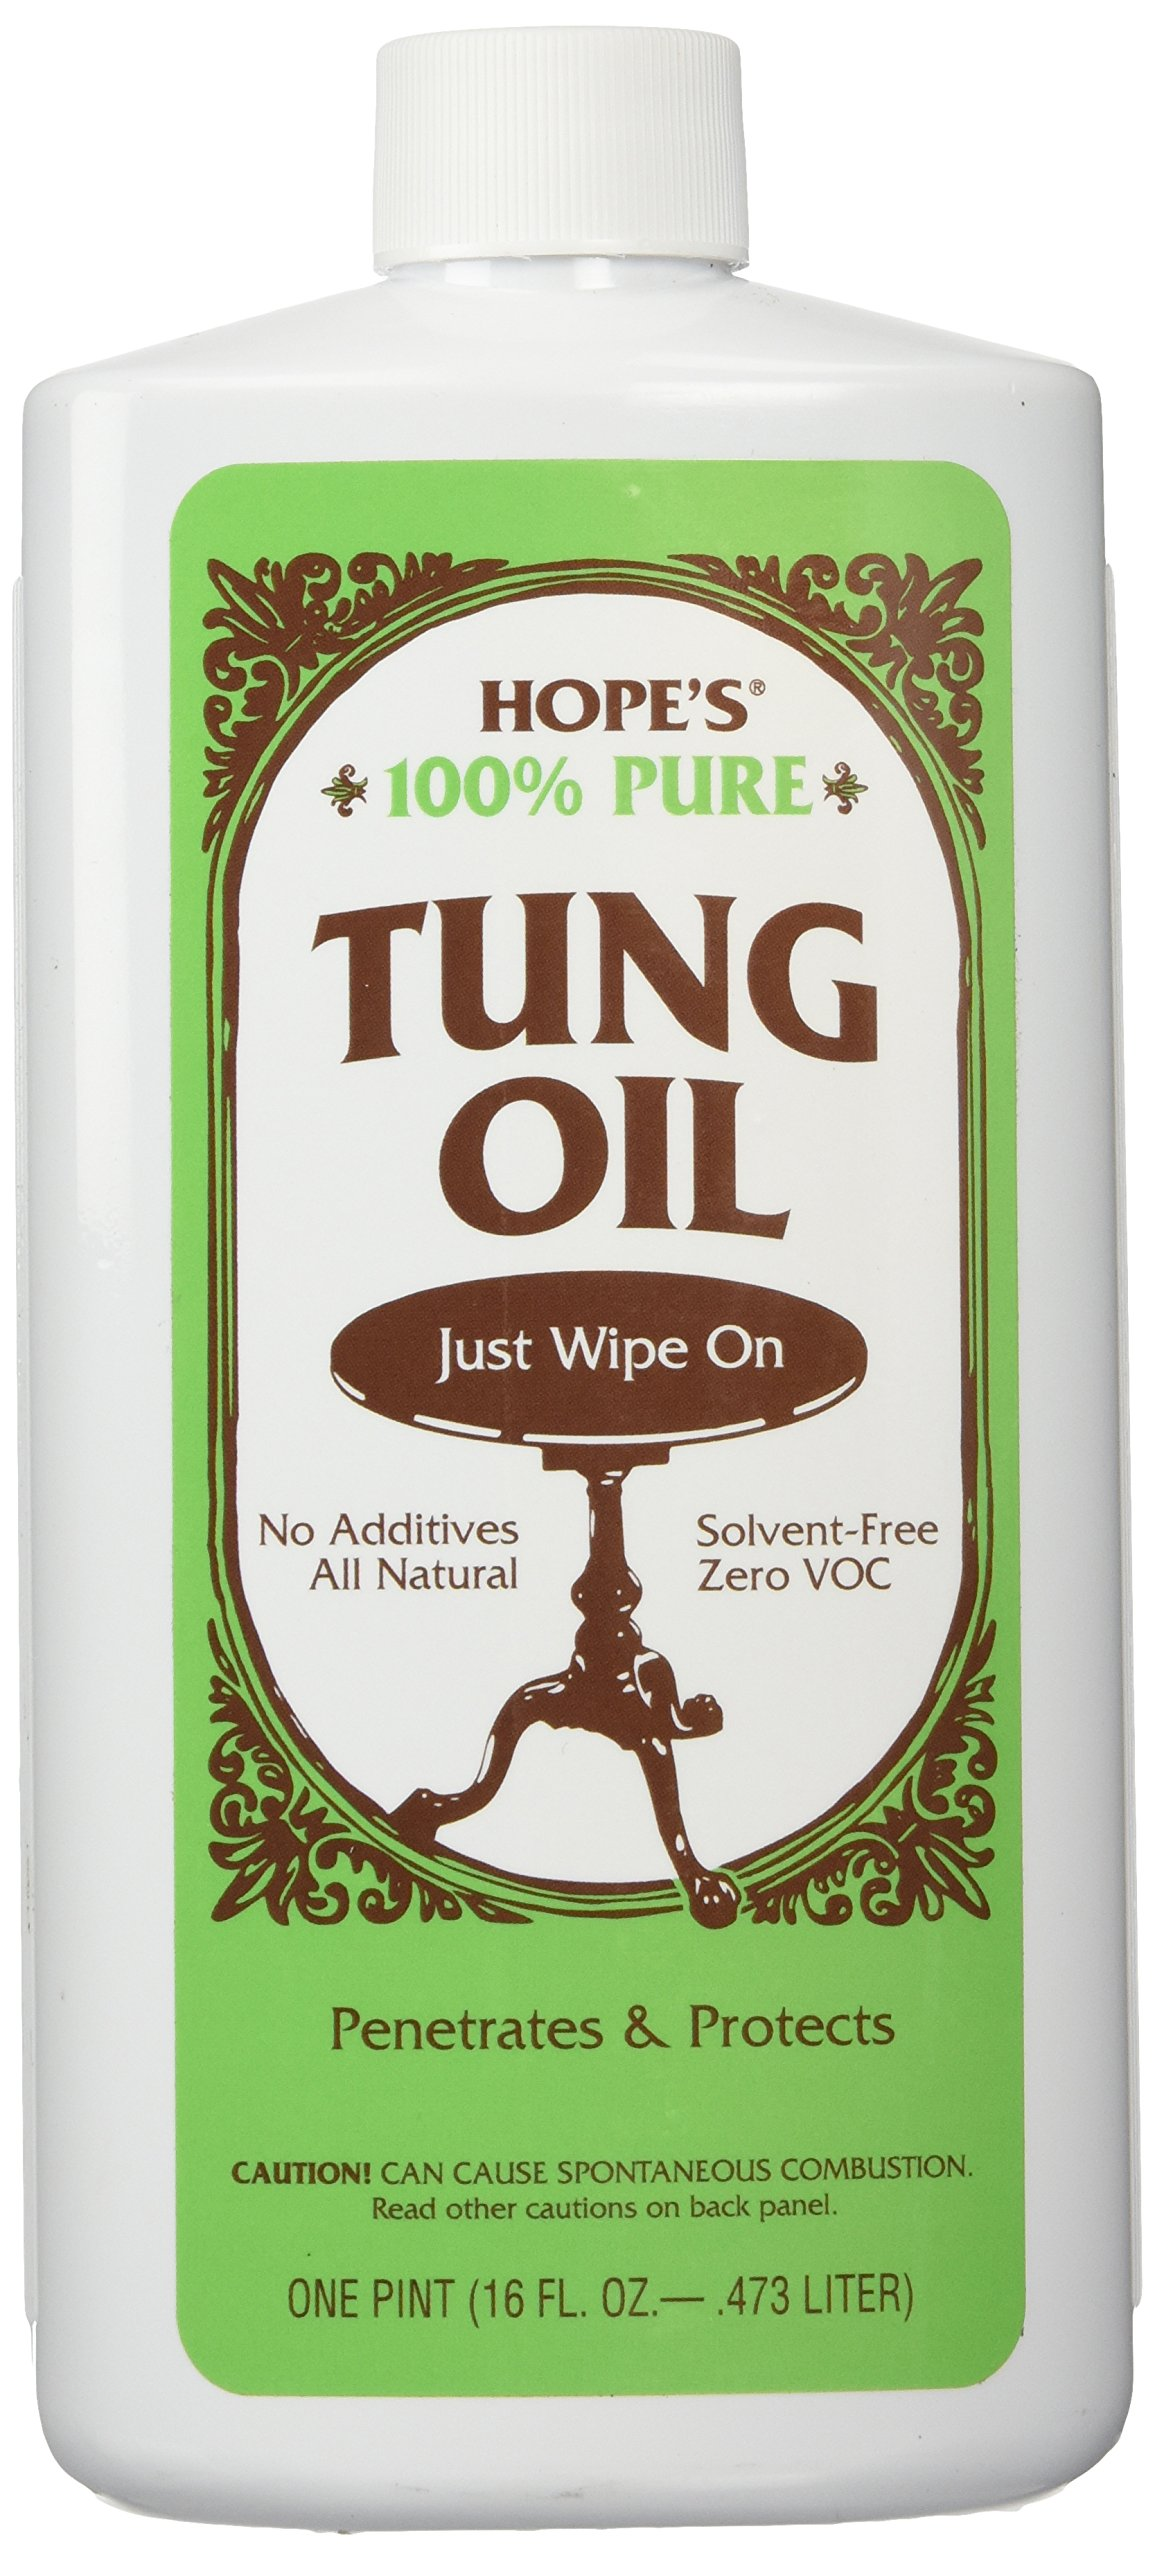 HOPE'S 100% Tung Oil 16 oz - Pt. by HOPE'S (Image #1)